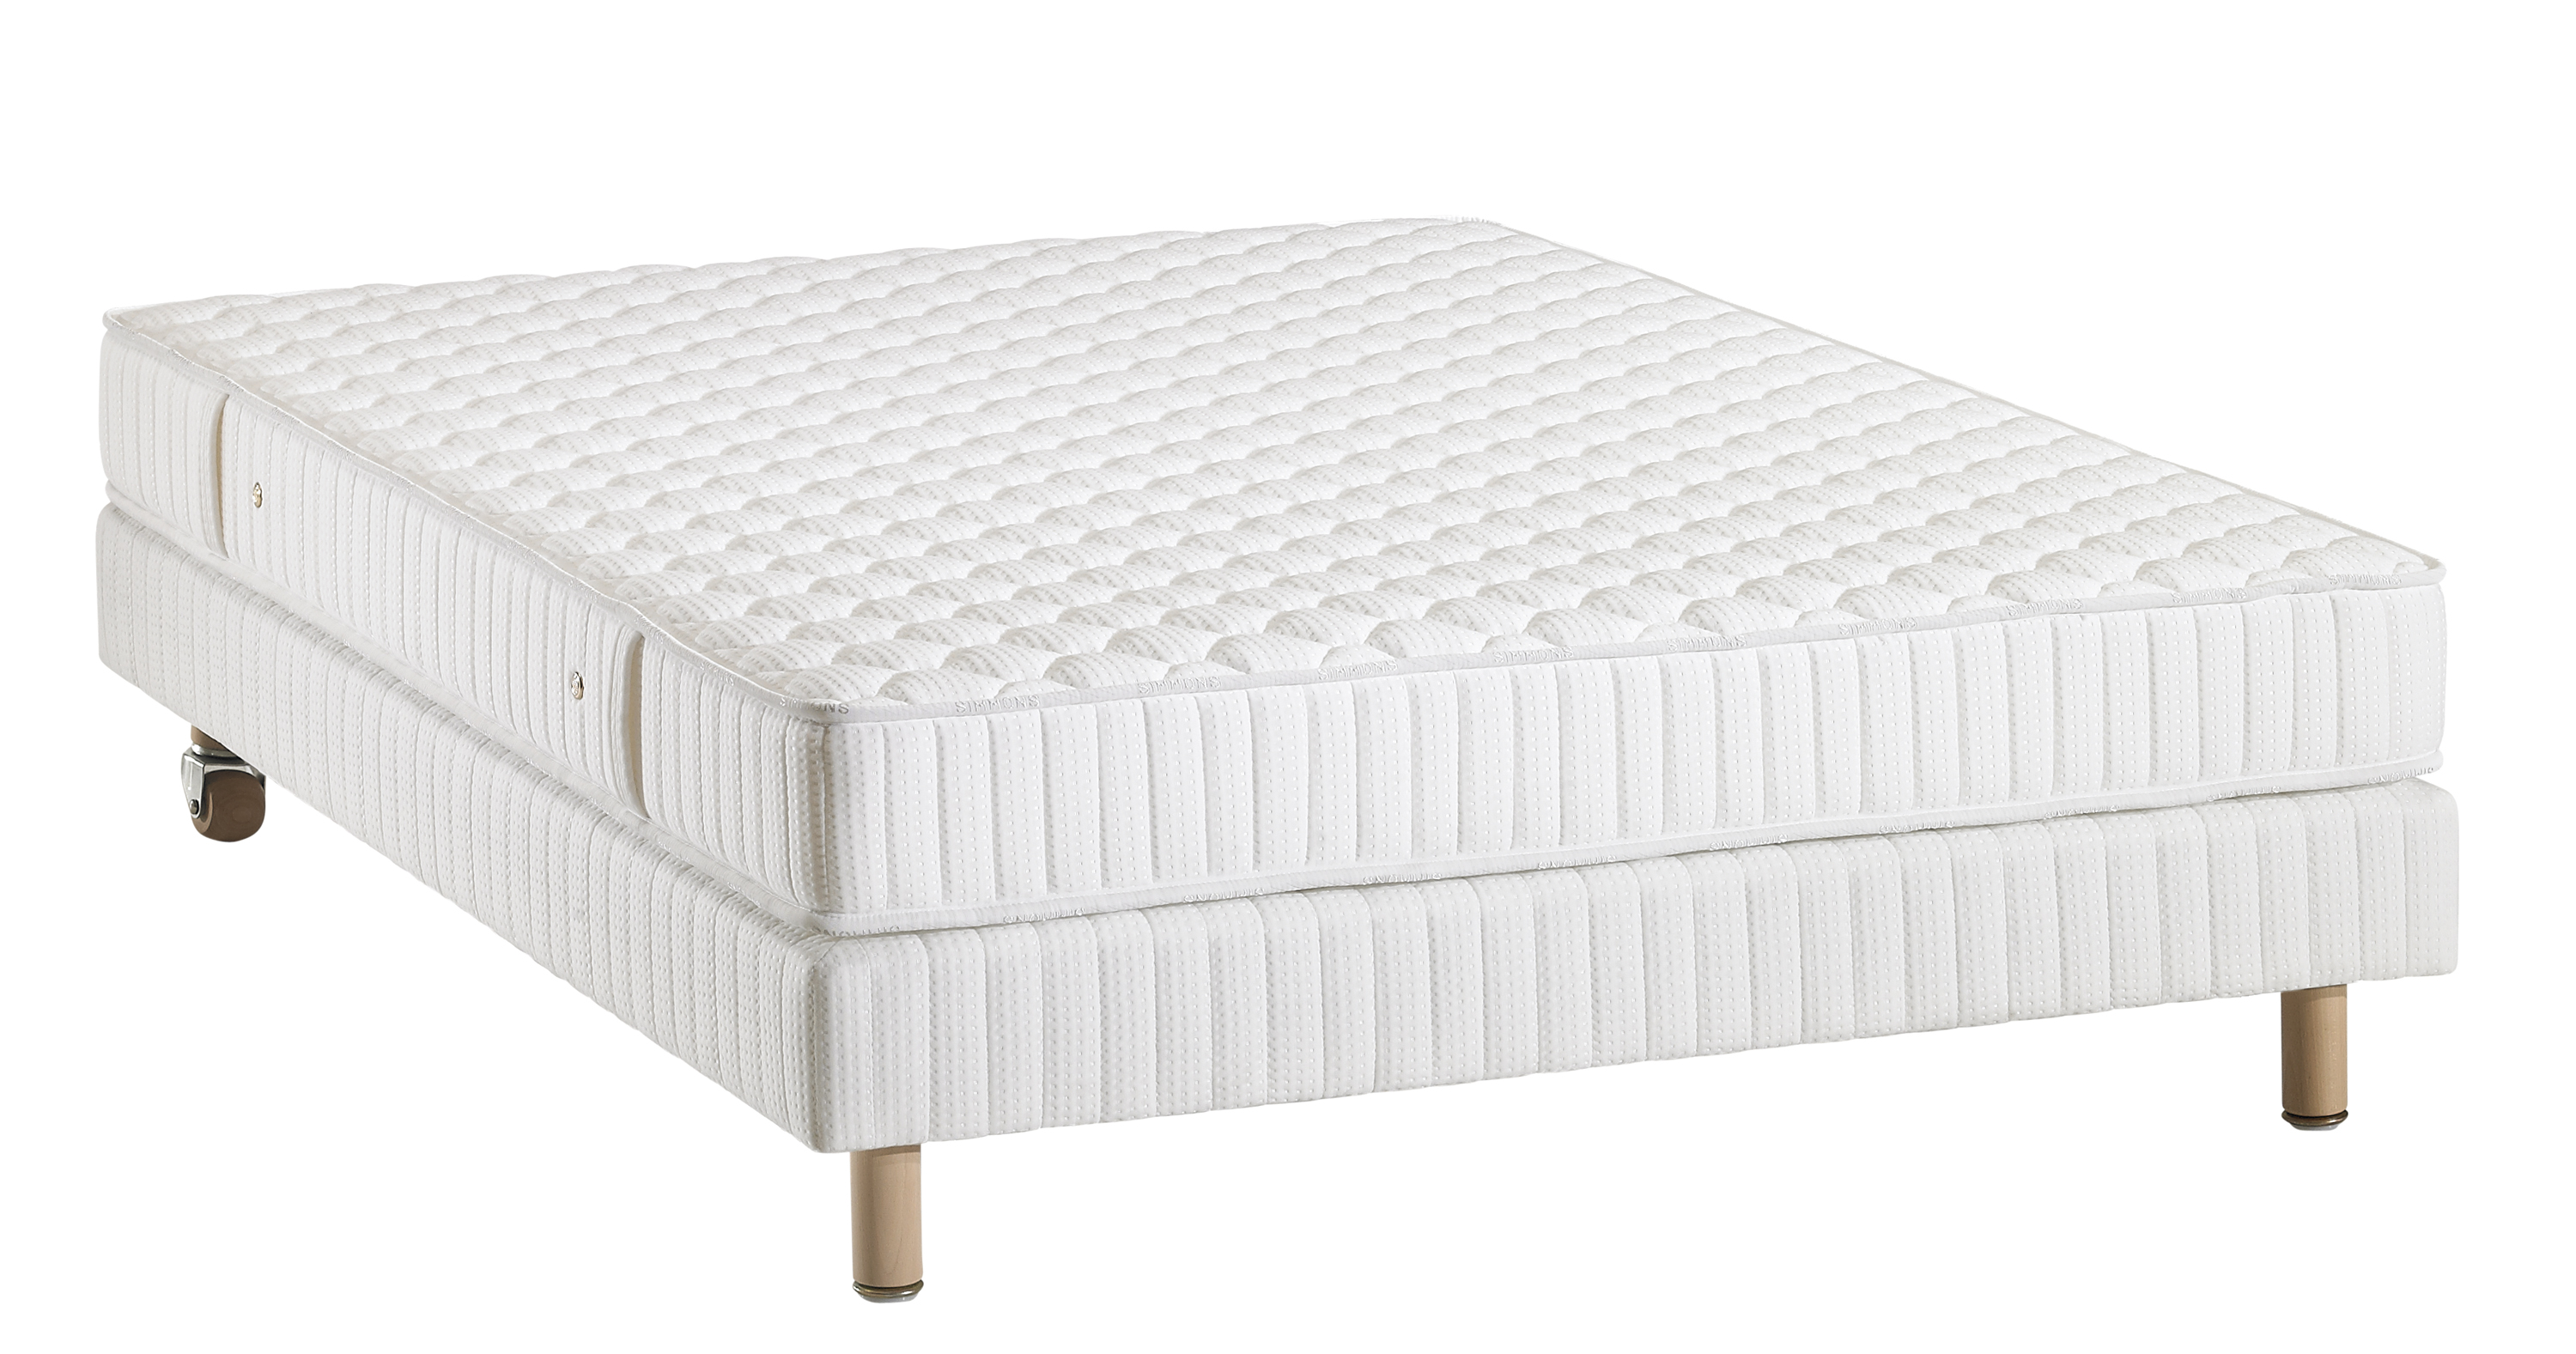 matelas sommier 90x200 cheap lit with matelas ikea x with cache sommier x ikea with matelas. Black Bedroom Furniture Sets. Home Design Ideas